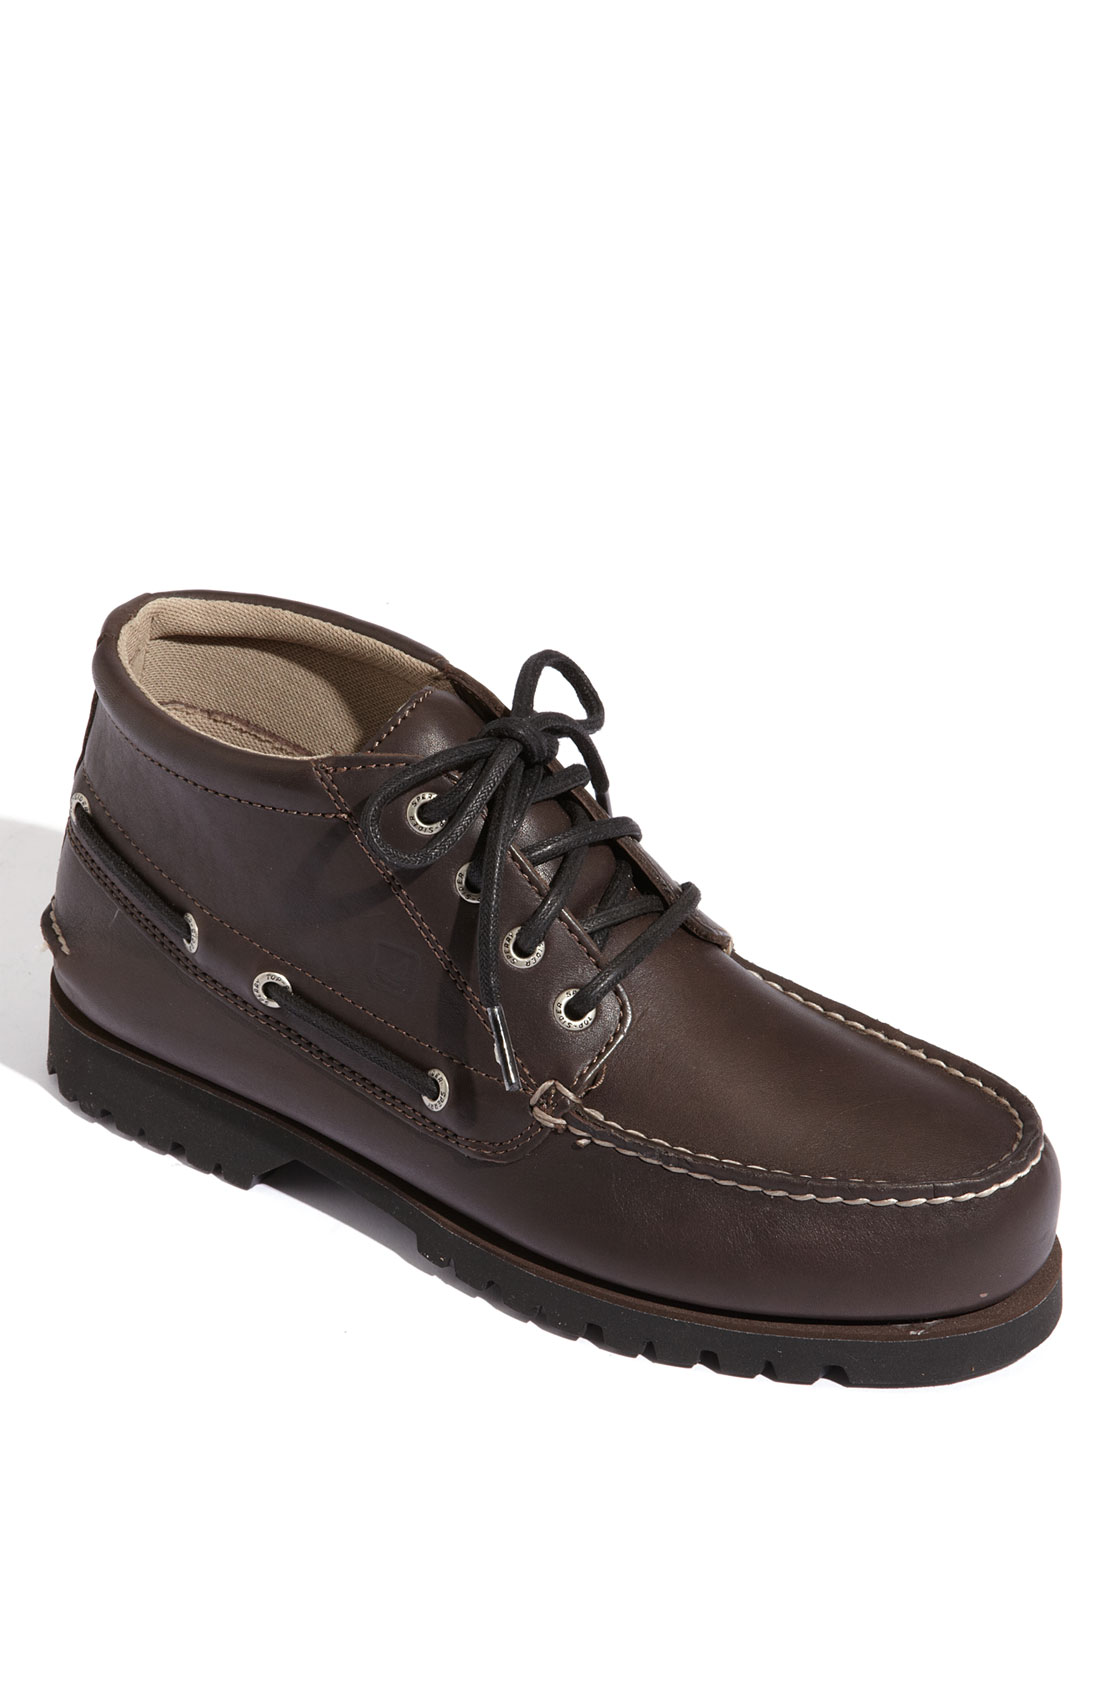 Sperry Top Sider Boat Lug Chukka Boot In Brown For Men